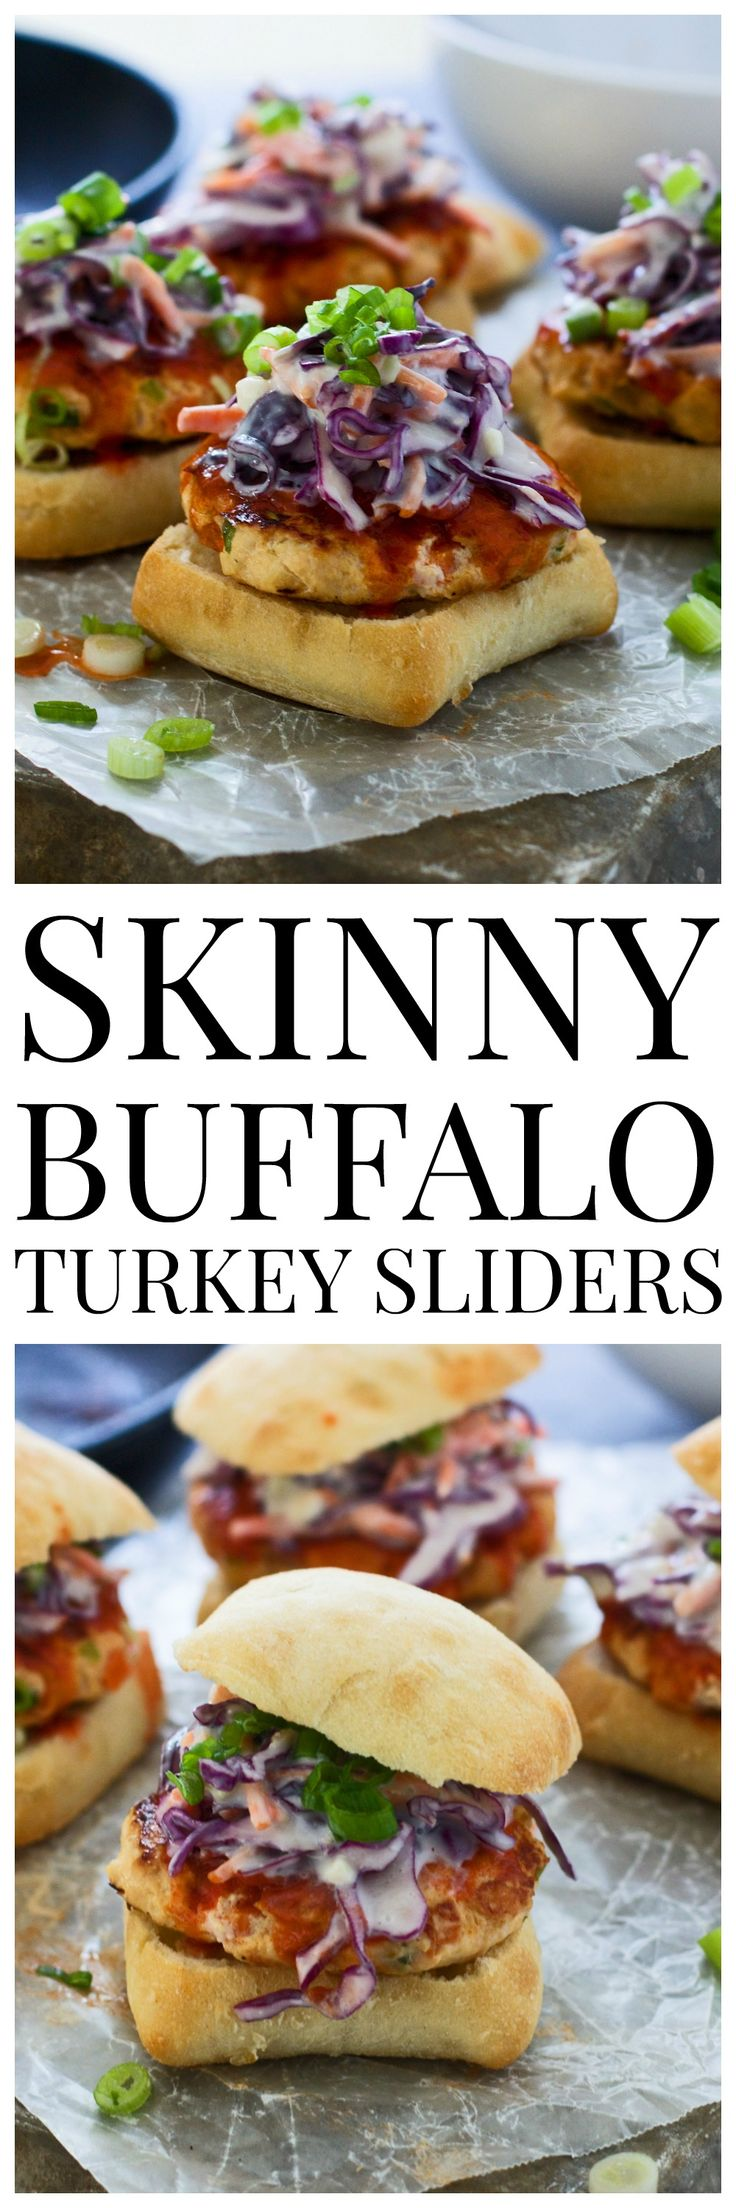 Skinny Buffalo Turkey Sliders - So much flavor, and super healthy! #inspiredgathering #spon